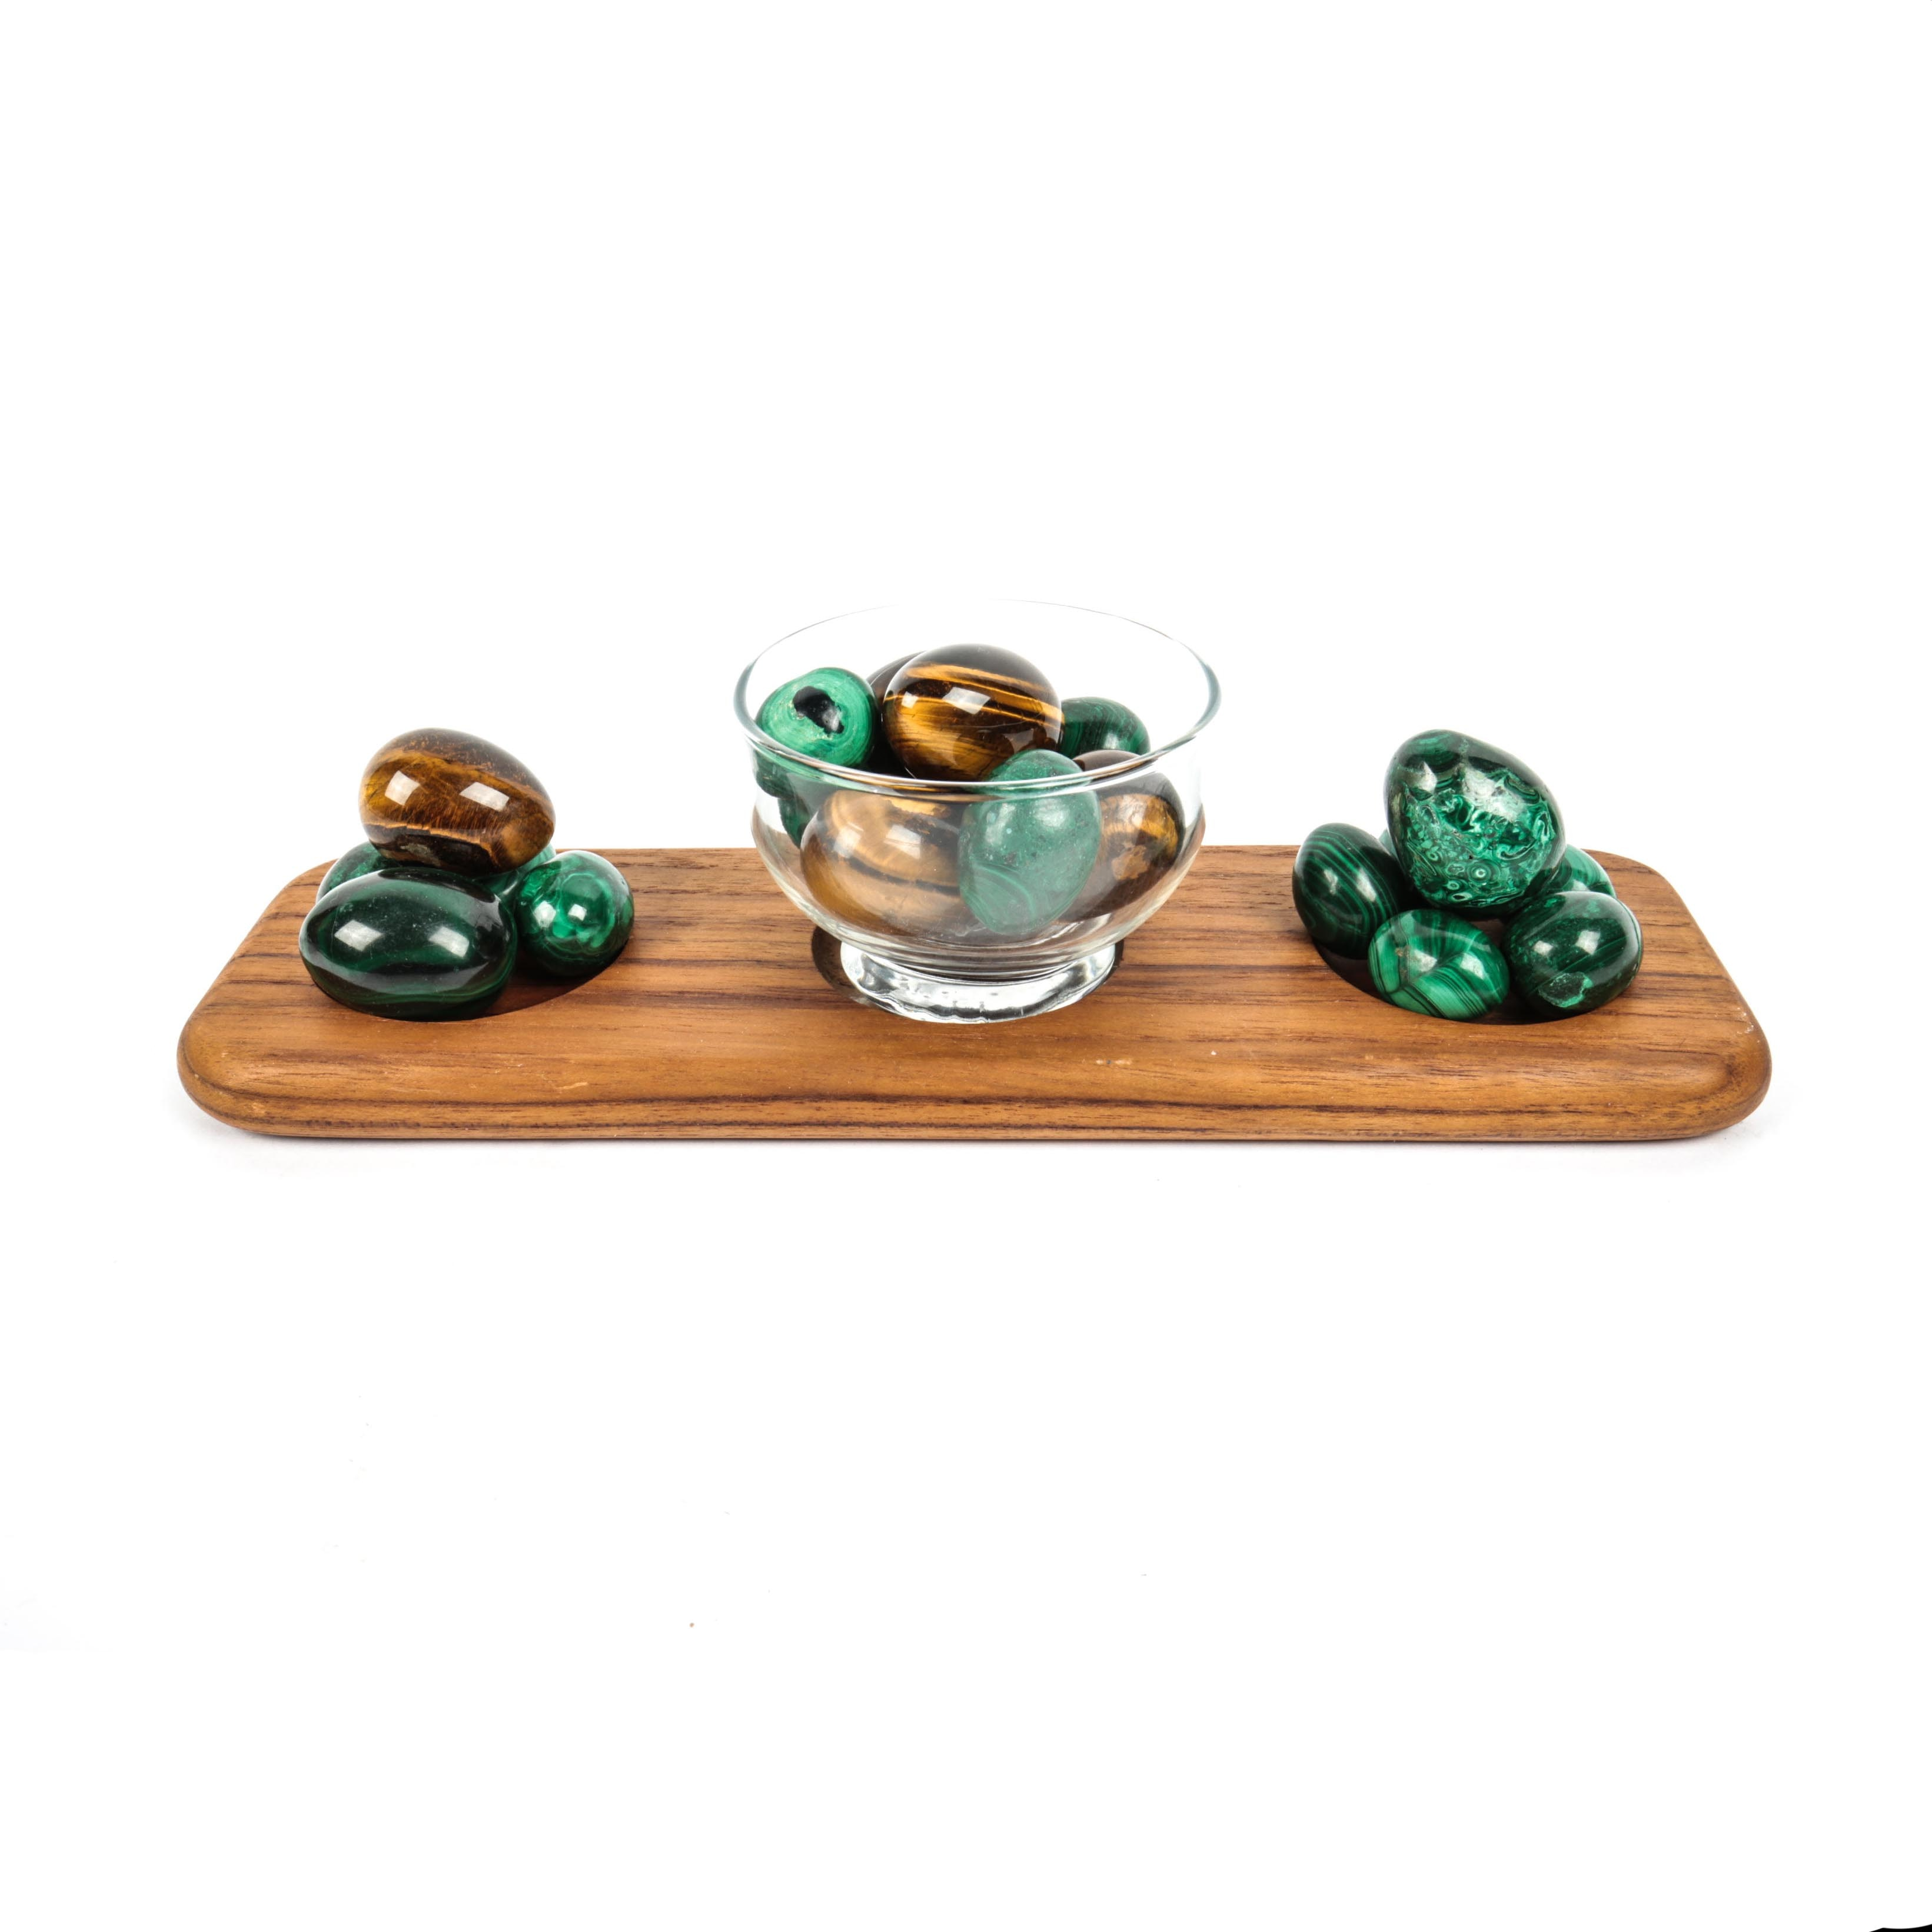 Teak Tray with Bowl and Decorative Stone Eggs